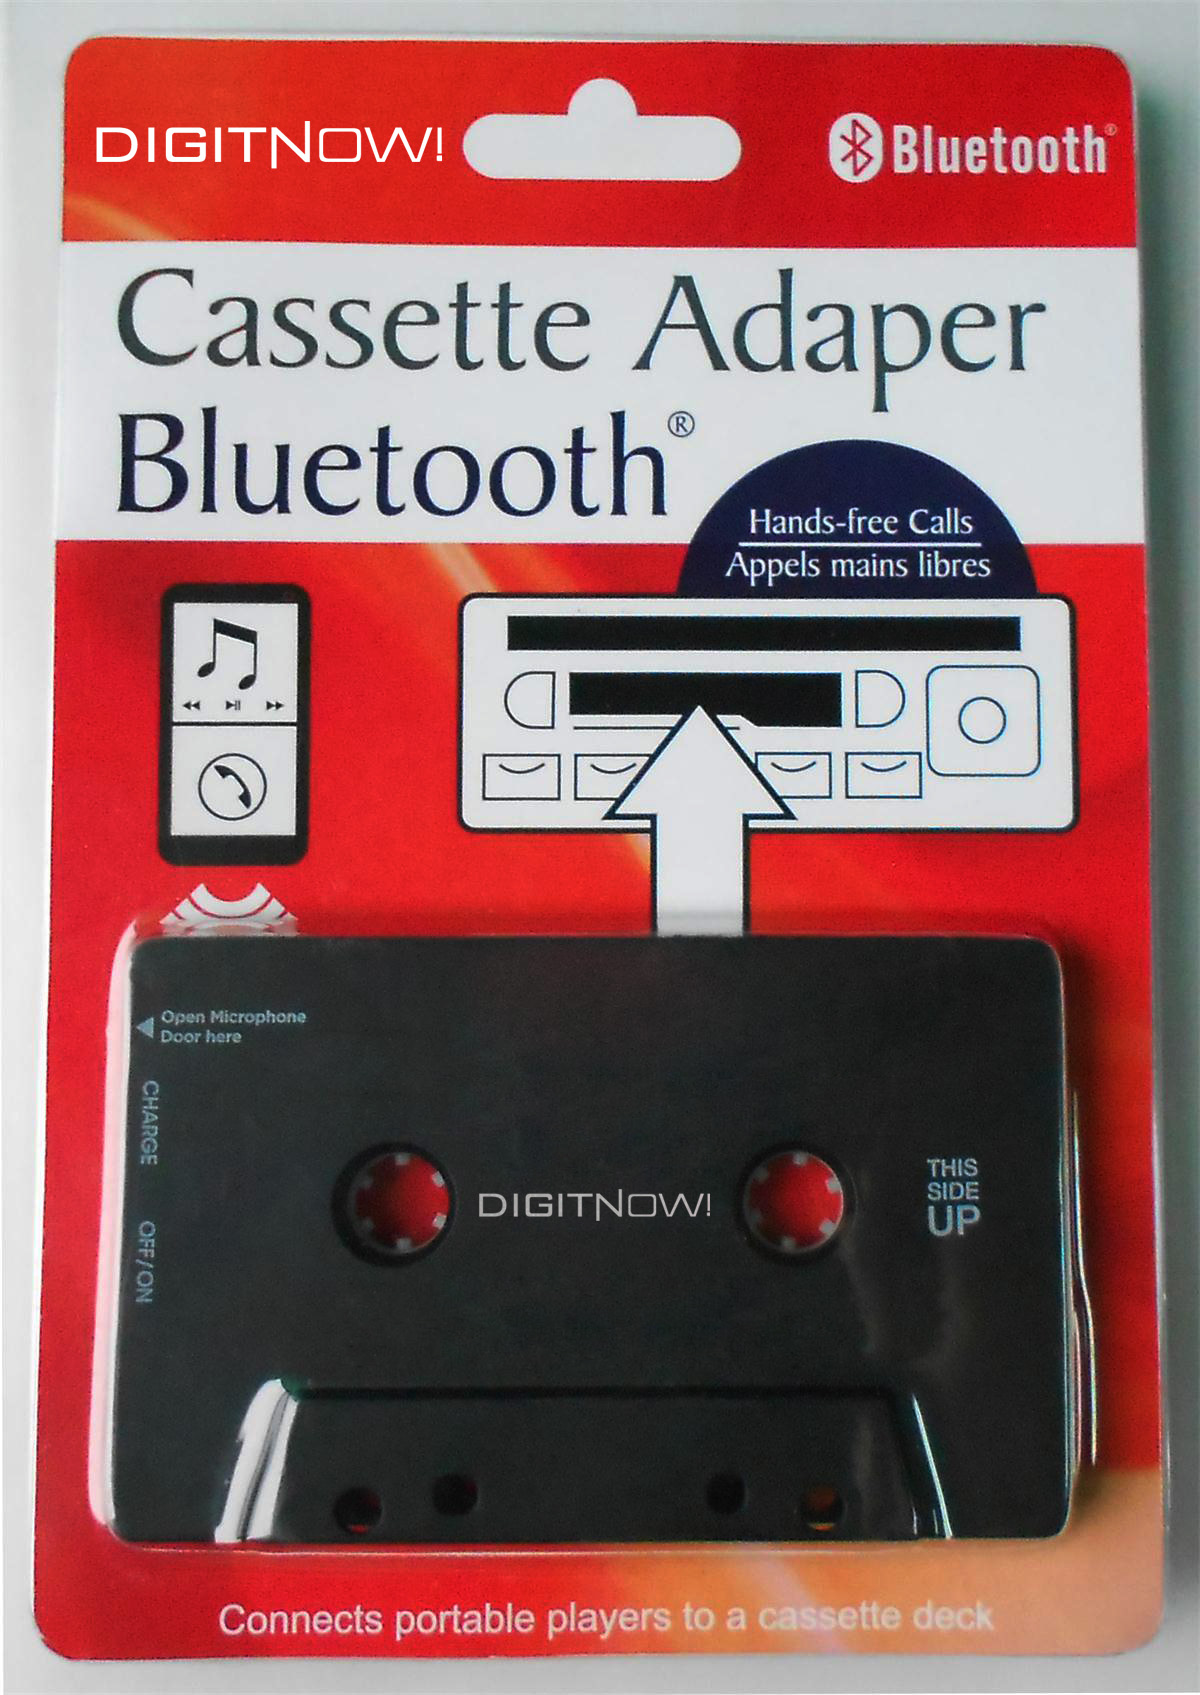 Cassette Adapter Bluetooth, Music Receiver for Cassette Decks